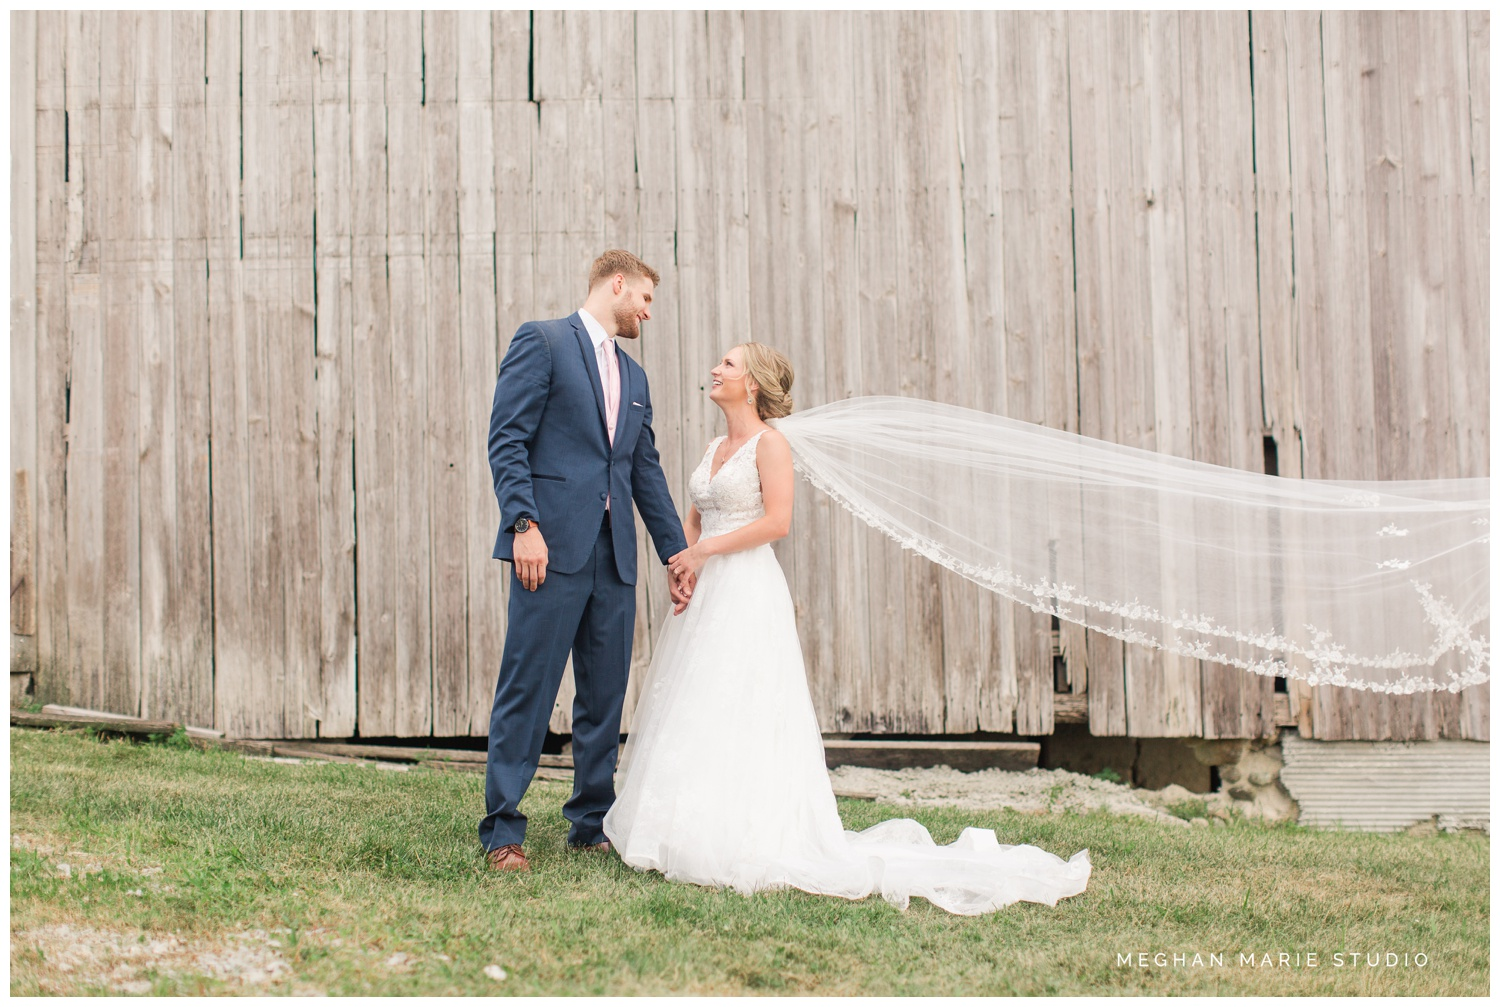 meghan marie studio ohio wedding kyle ahrens msu michigan state basketball spartans navy blush rustic barn soft warm bright bubbles catholic church_0387.jpg